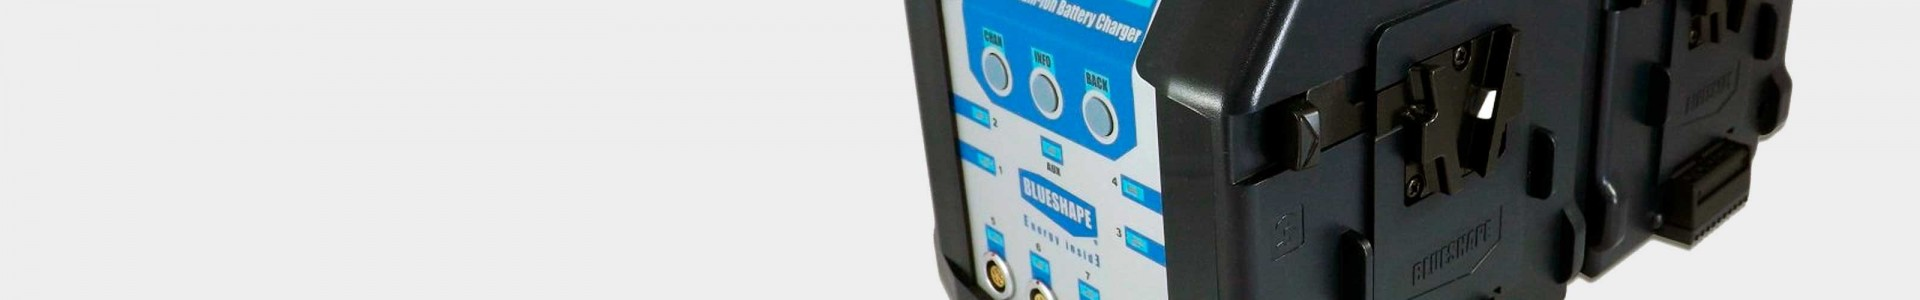 Blueshape battery chargers at Avacab - Best price online